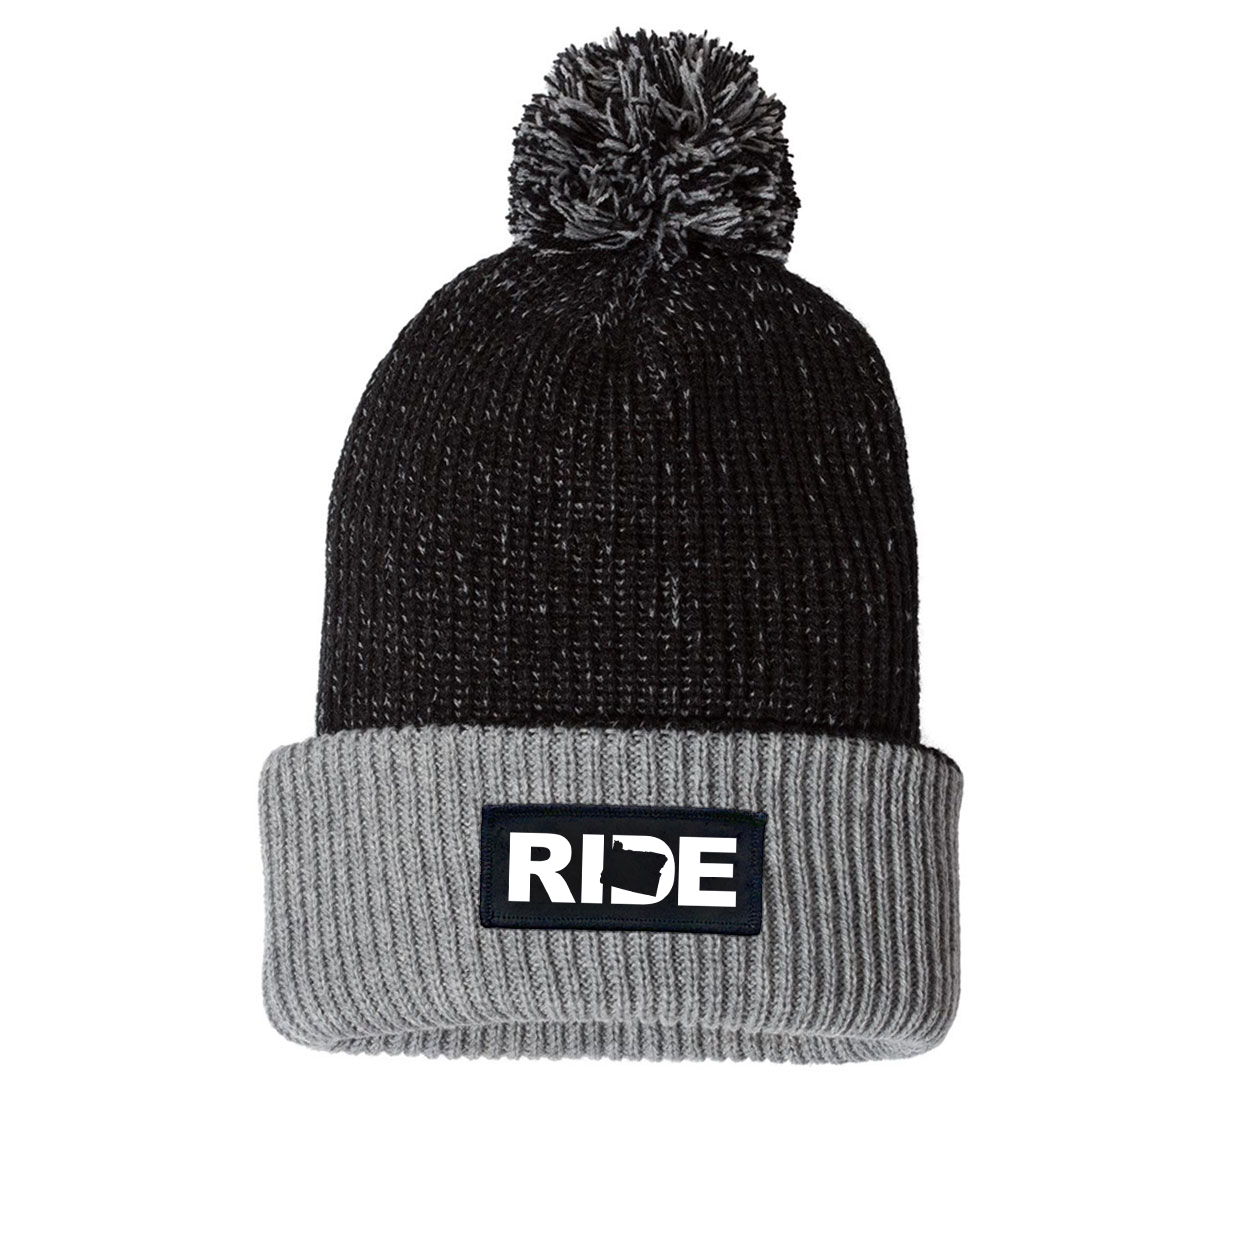 Ride Oregon Night Out Woven Patch Roll Up Pom Knit Beanie Black/Gray (White Logo)